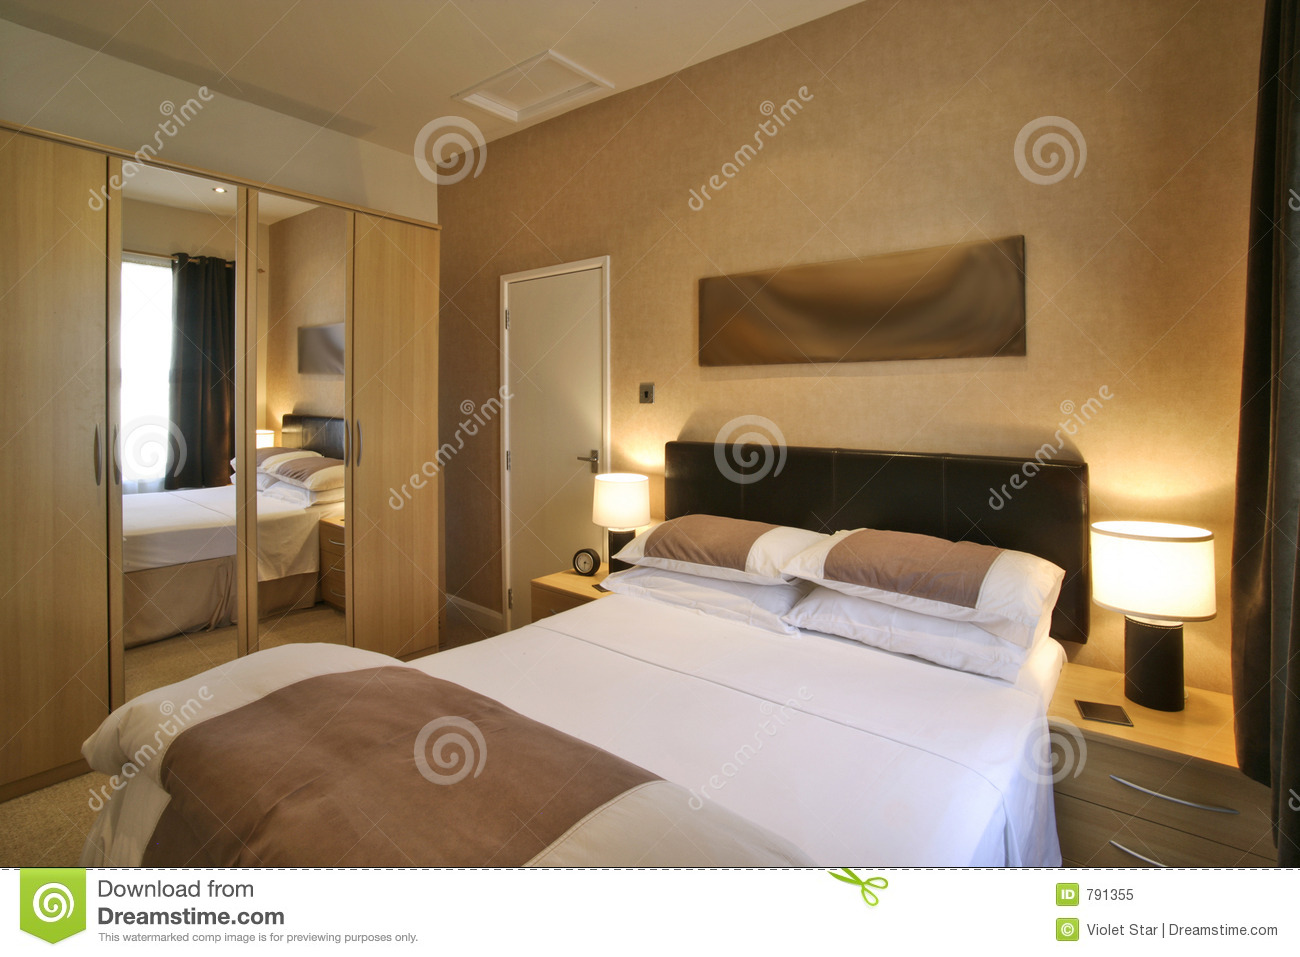 Chambre coucher de luxe image stock image du luxe for Chambre a coucher photo